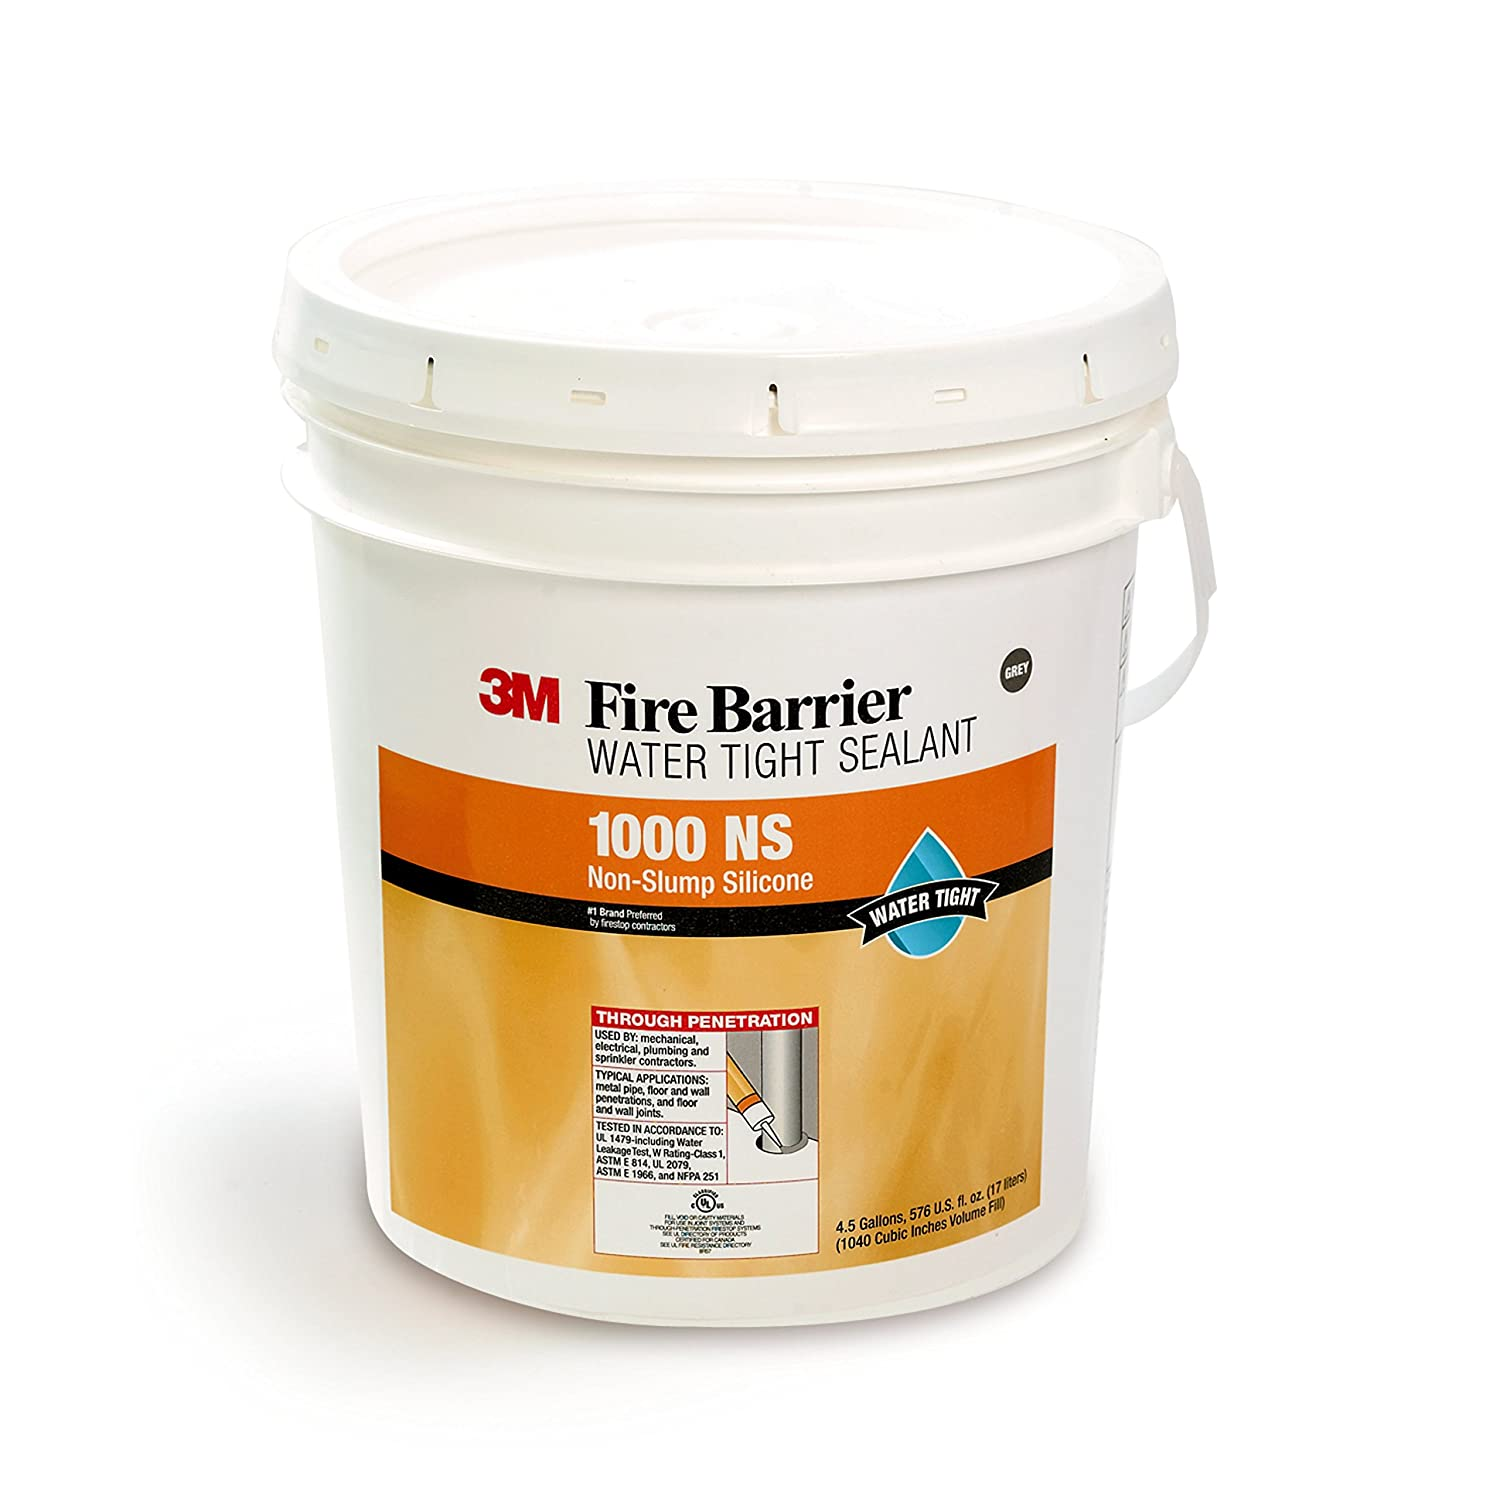 Image of 3M 11537-case Fire Barrier Water Tight Sealant 1000 NS, Pail, 1/case, 4.5 gal Home Improvements